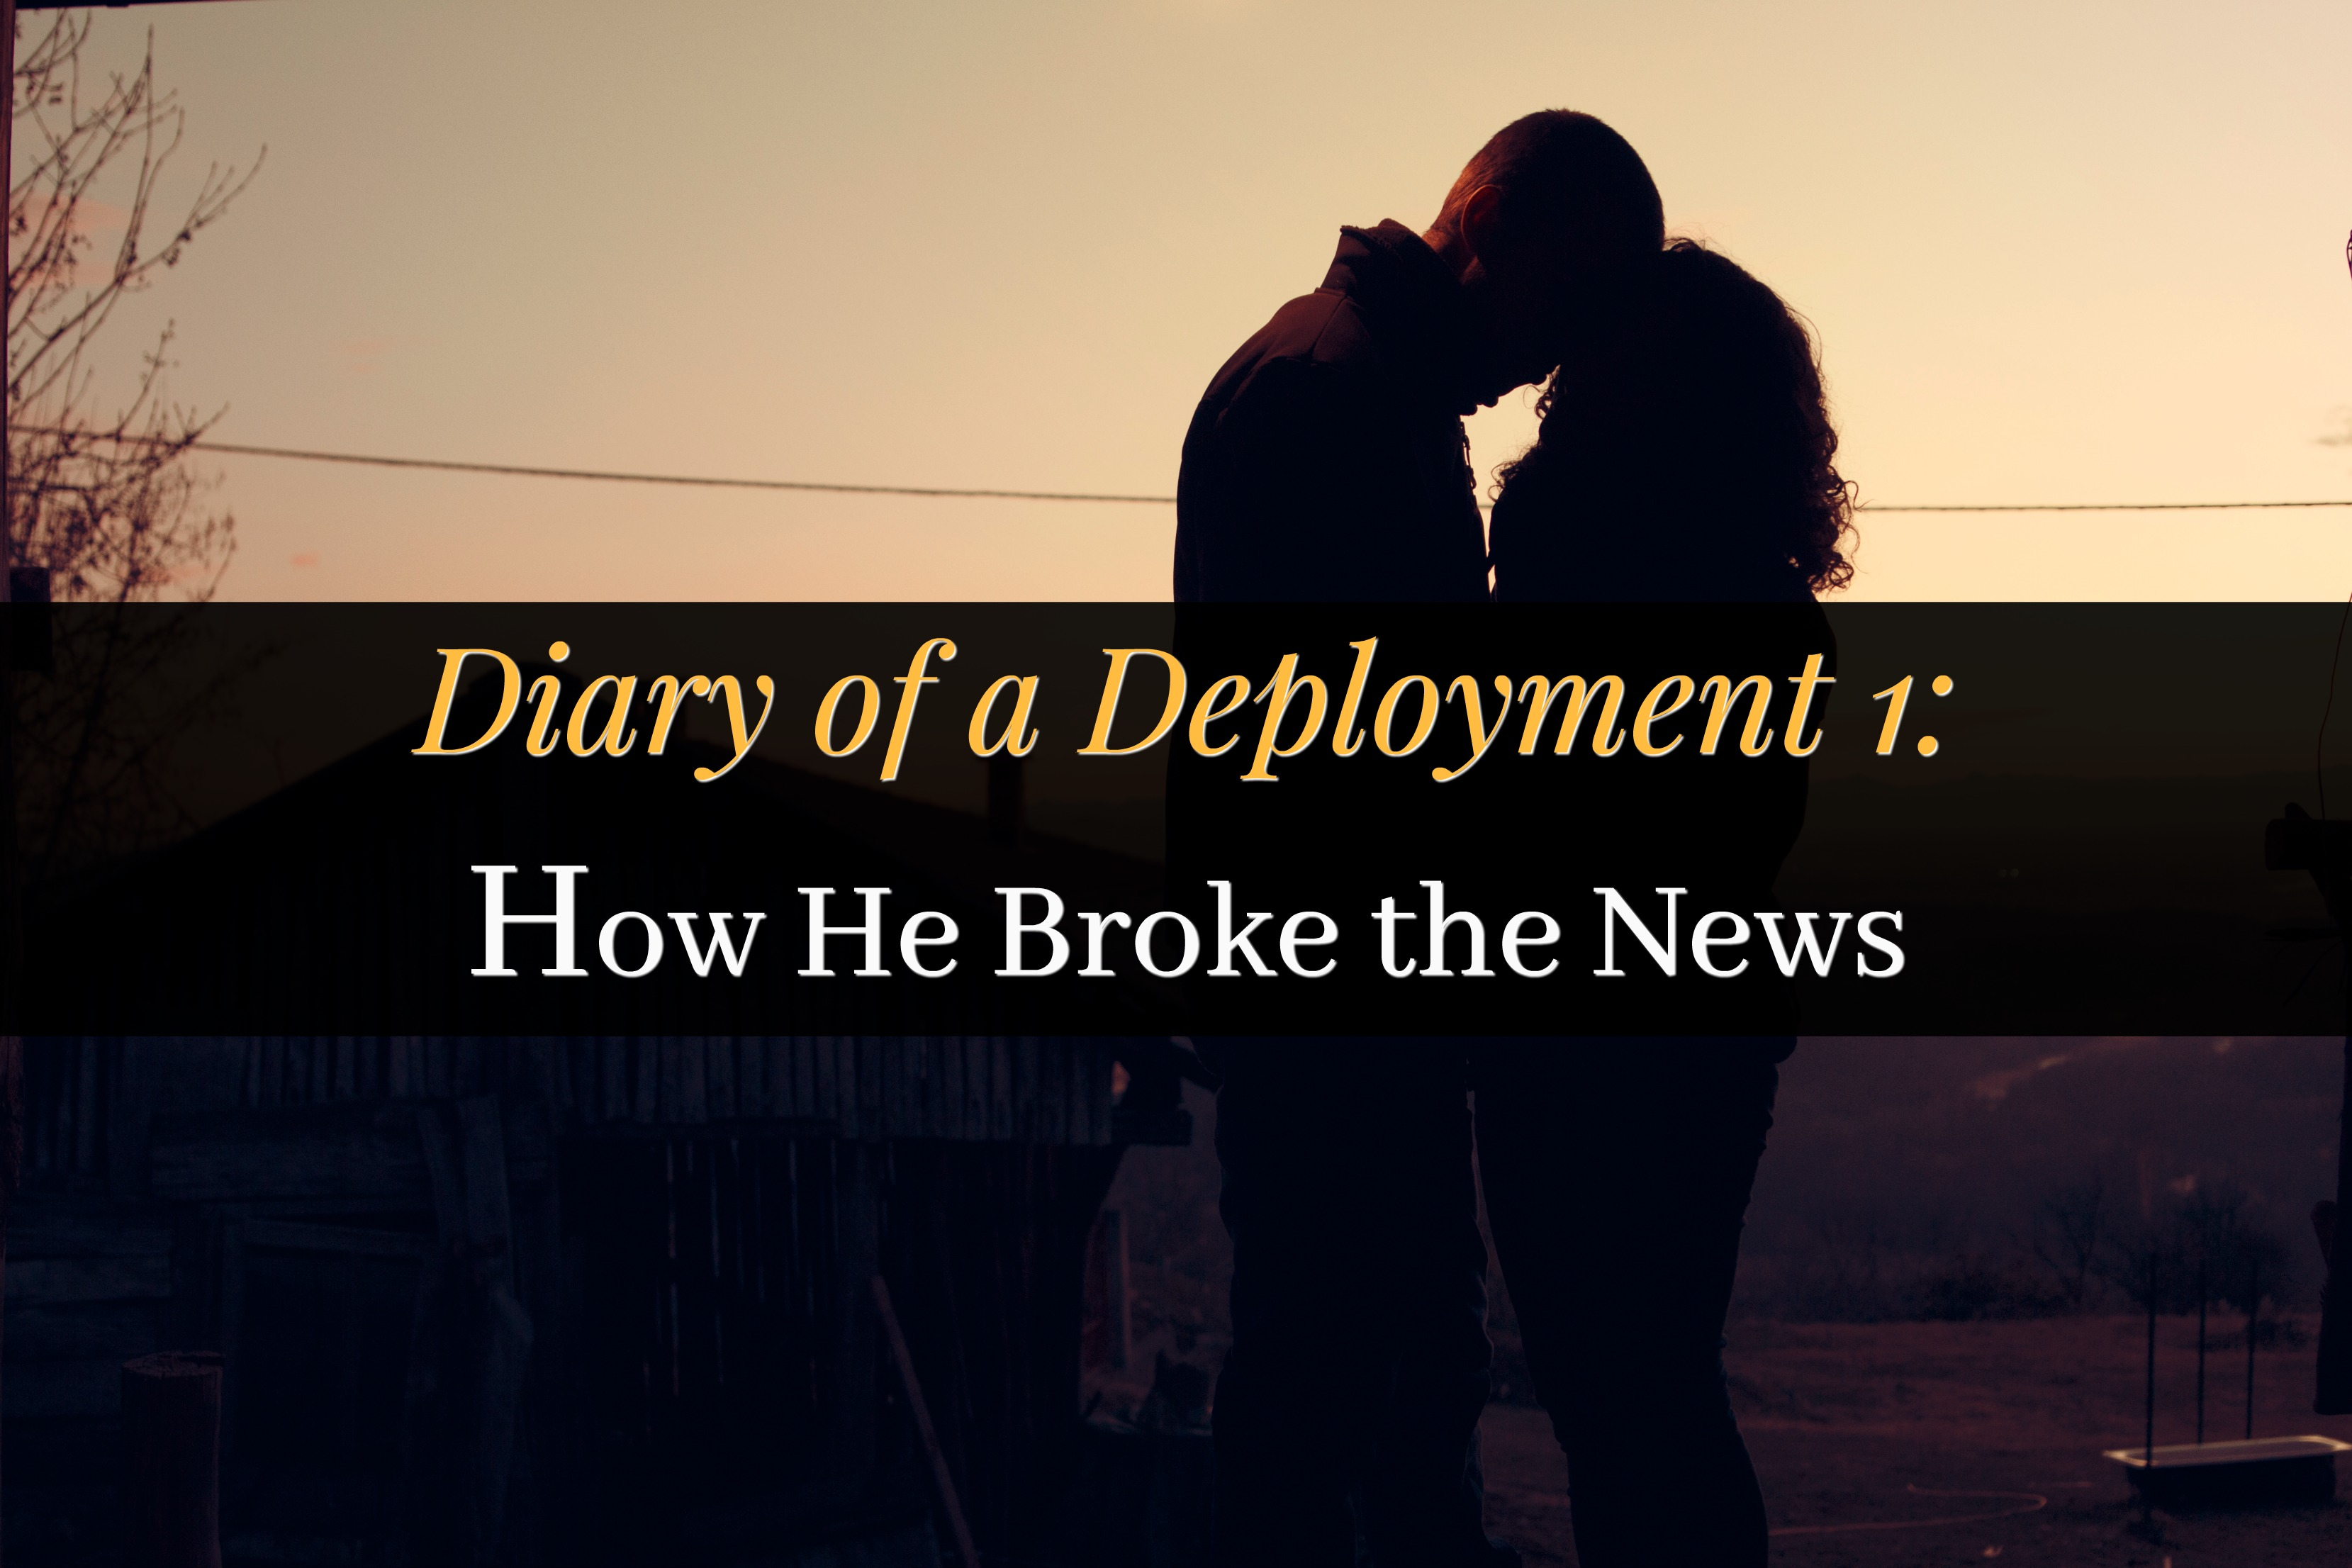 Diary of a Deployment 1: How He Broke the News